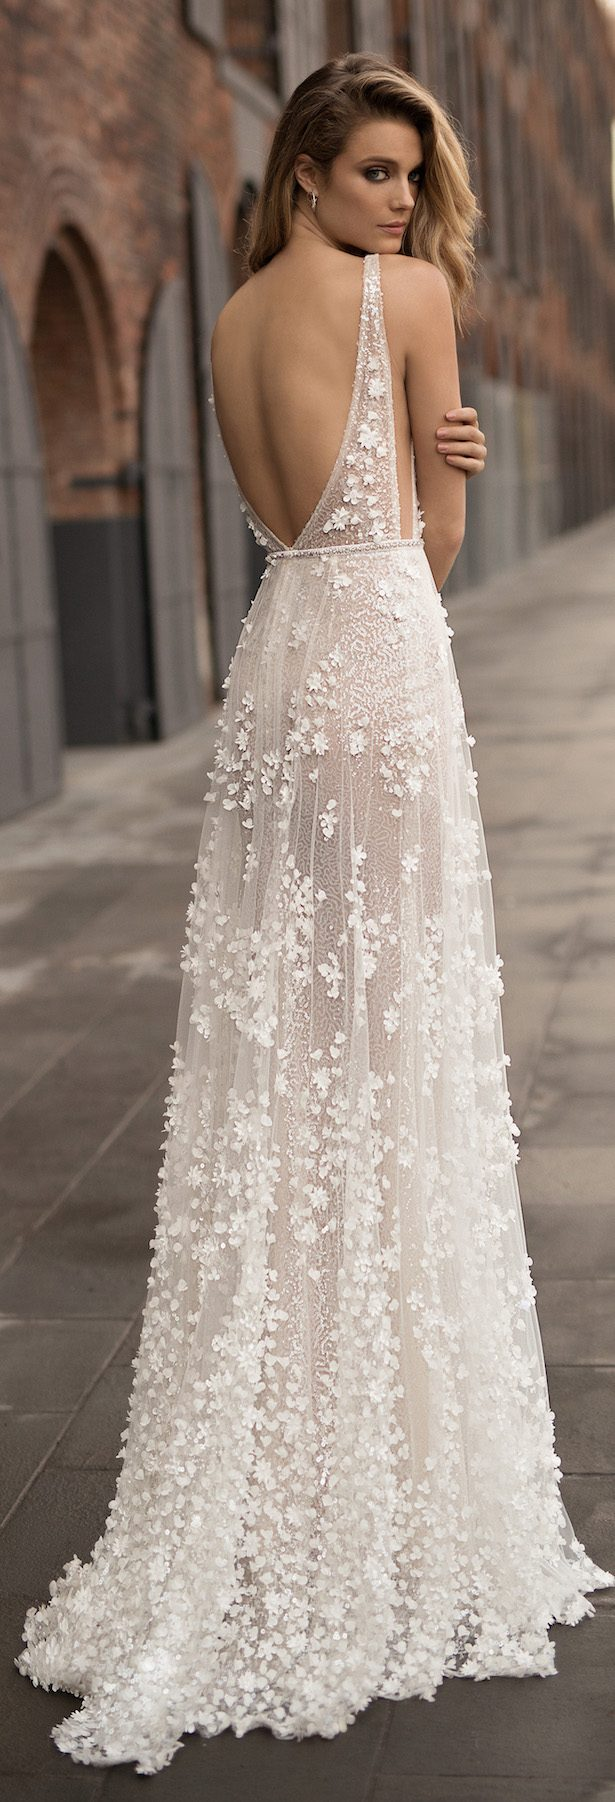 Best Wedding Dresses of 2017 - Belle The Magazine